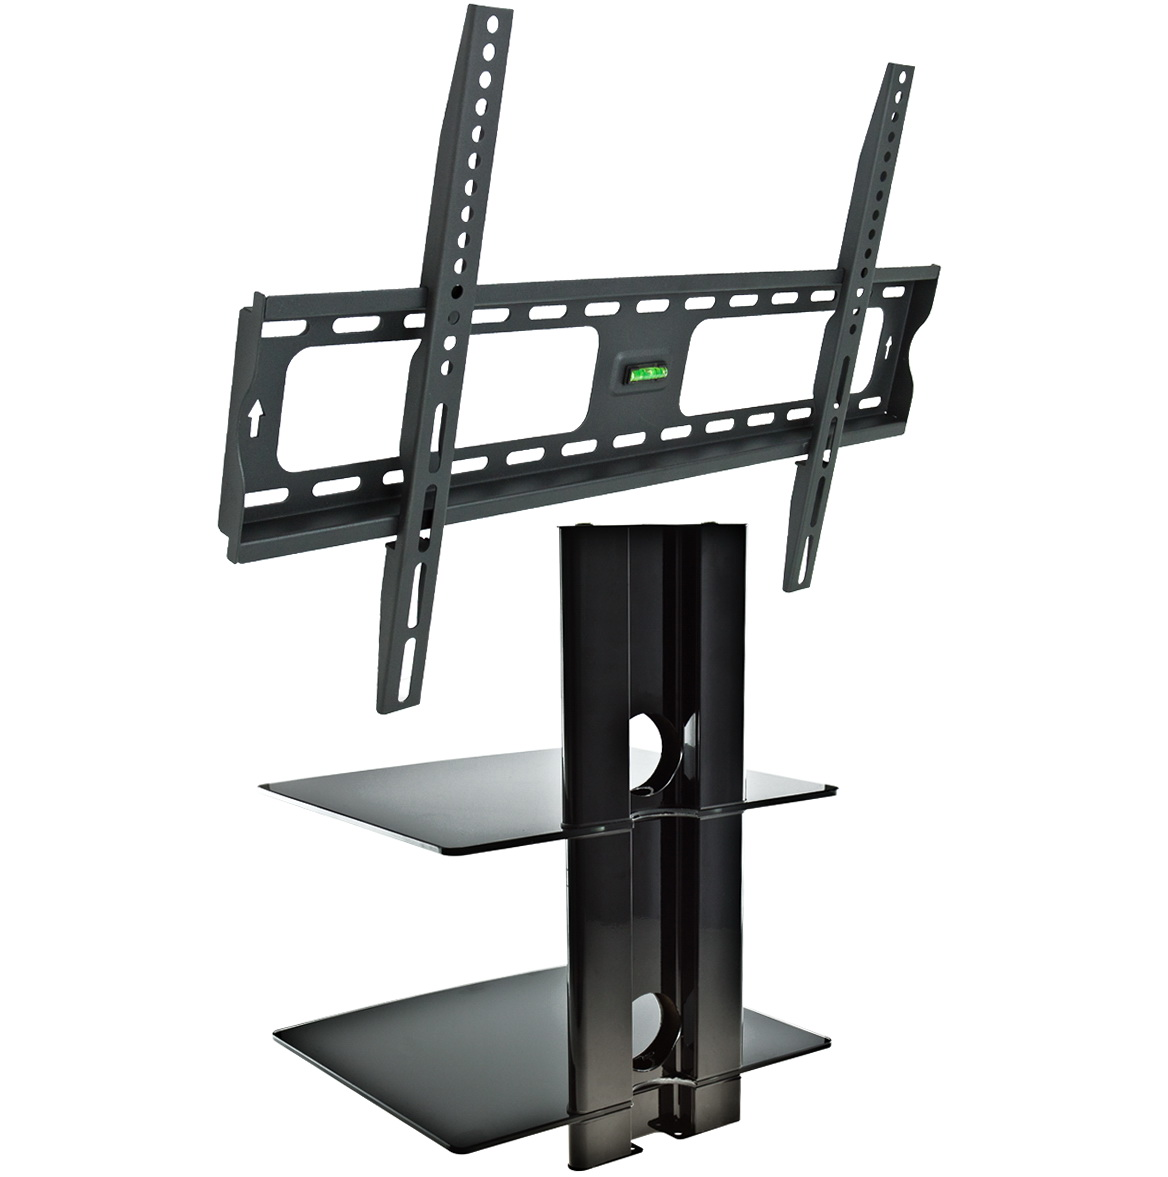 Wall Mount Tv Shelf System